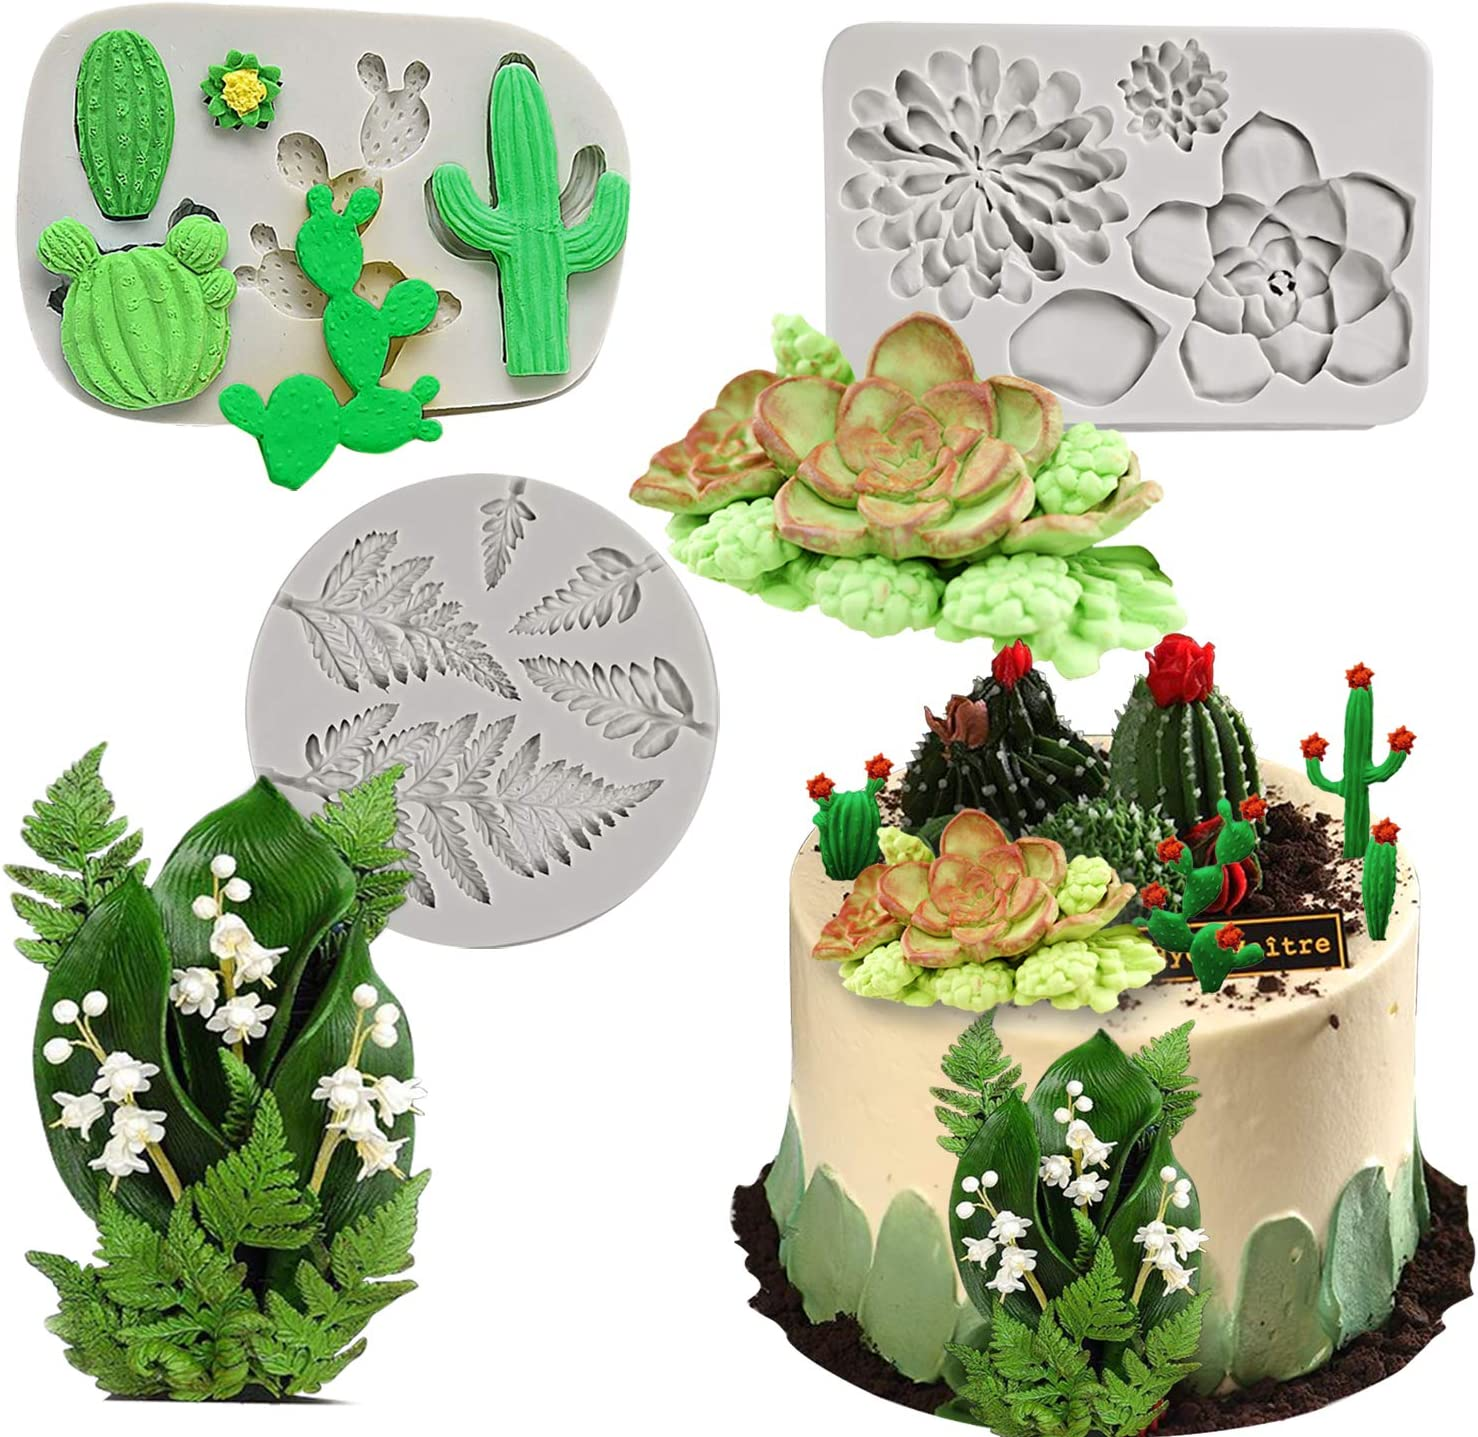 Palksky Silicone Cactus Fondant Mold/Succulent Leaves Candy Molds/Fern leaf Gumpaste mold for cup cake decorationg Polymer Clay